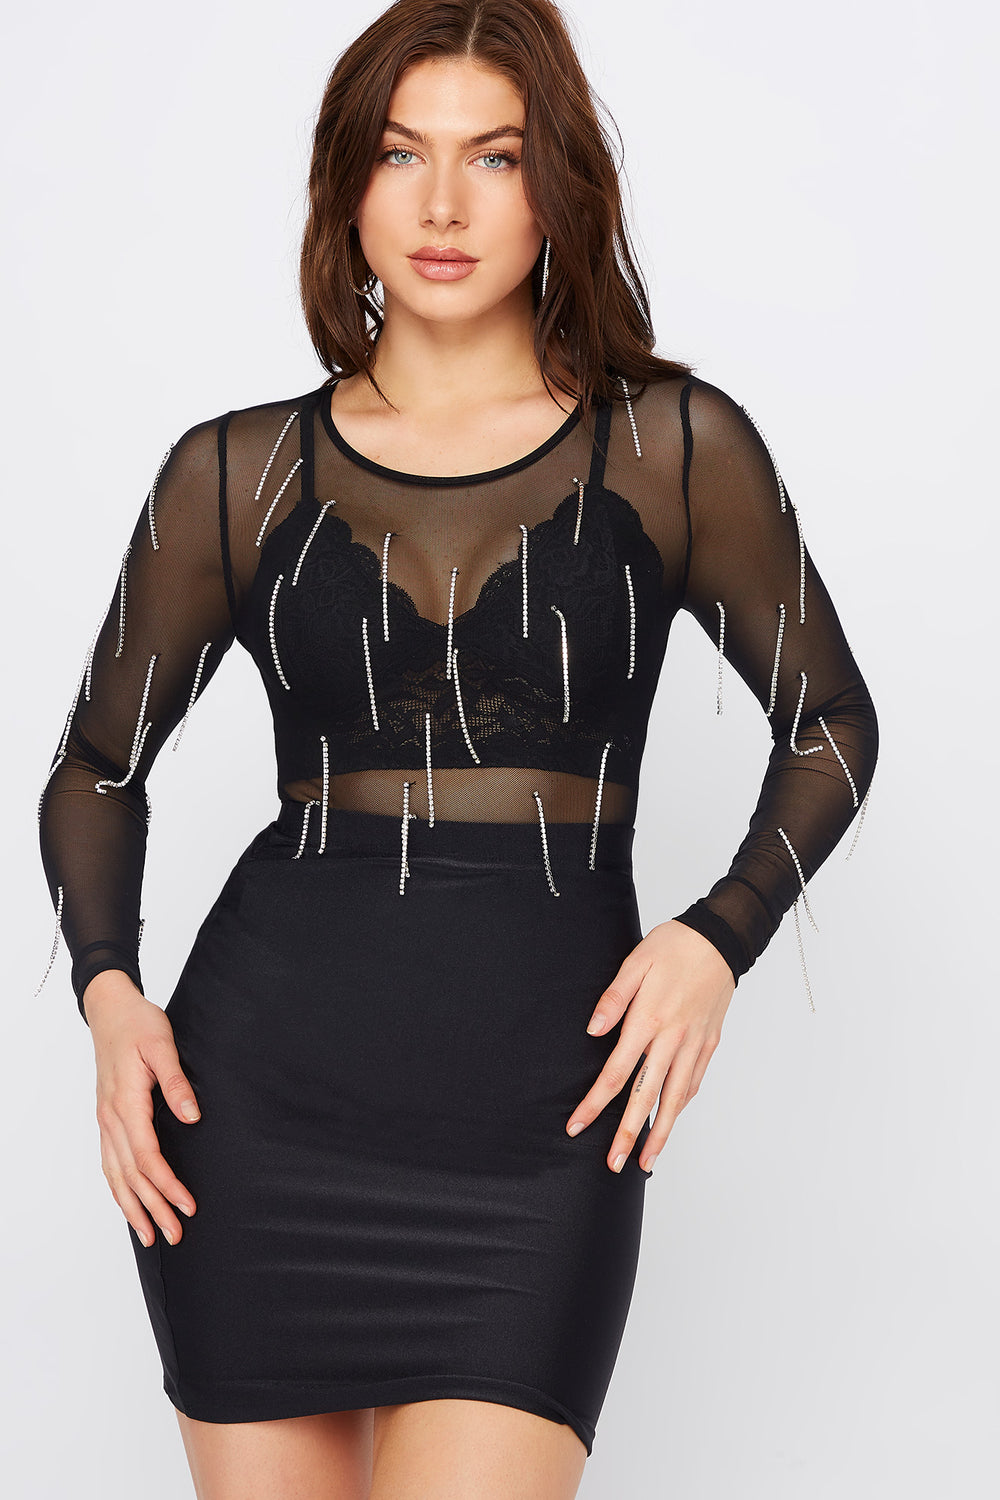 Mesh Rhinestone Long Sleeve Bodysuit Black